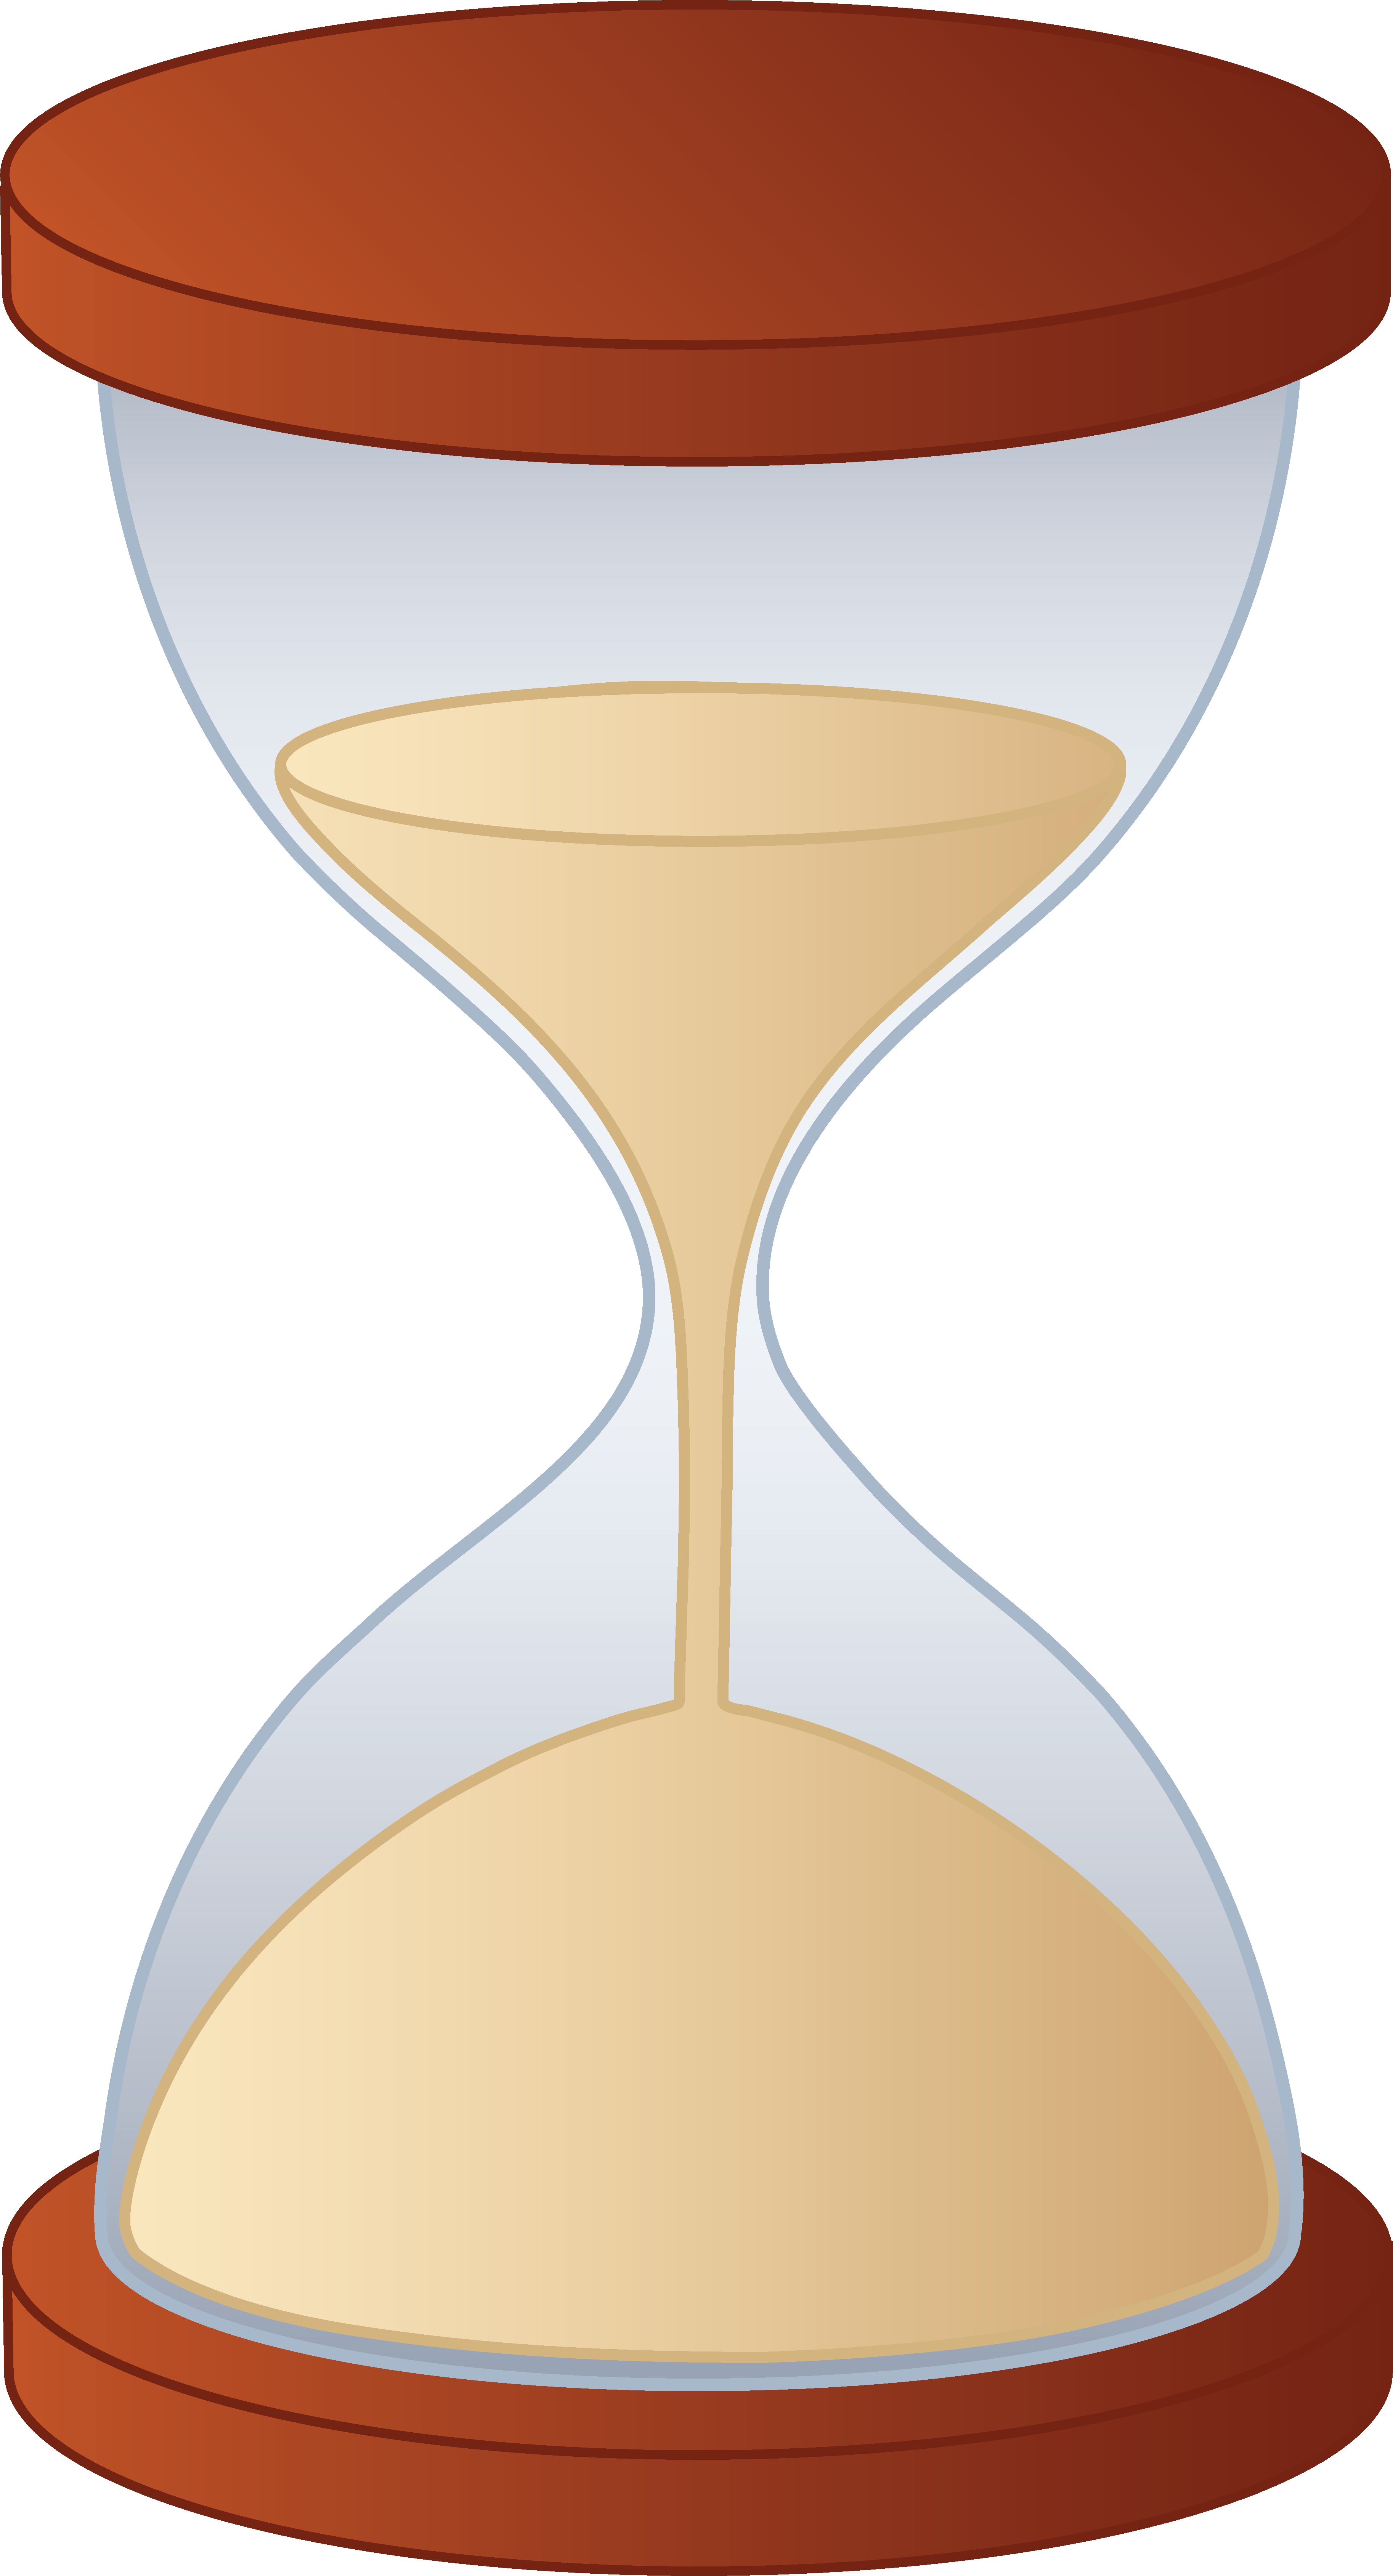 time clipart hourglass